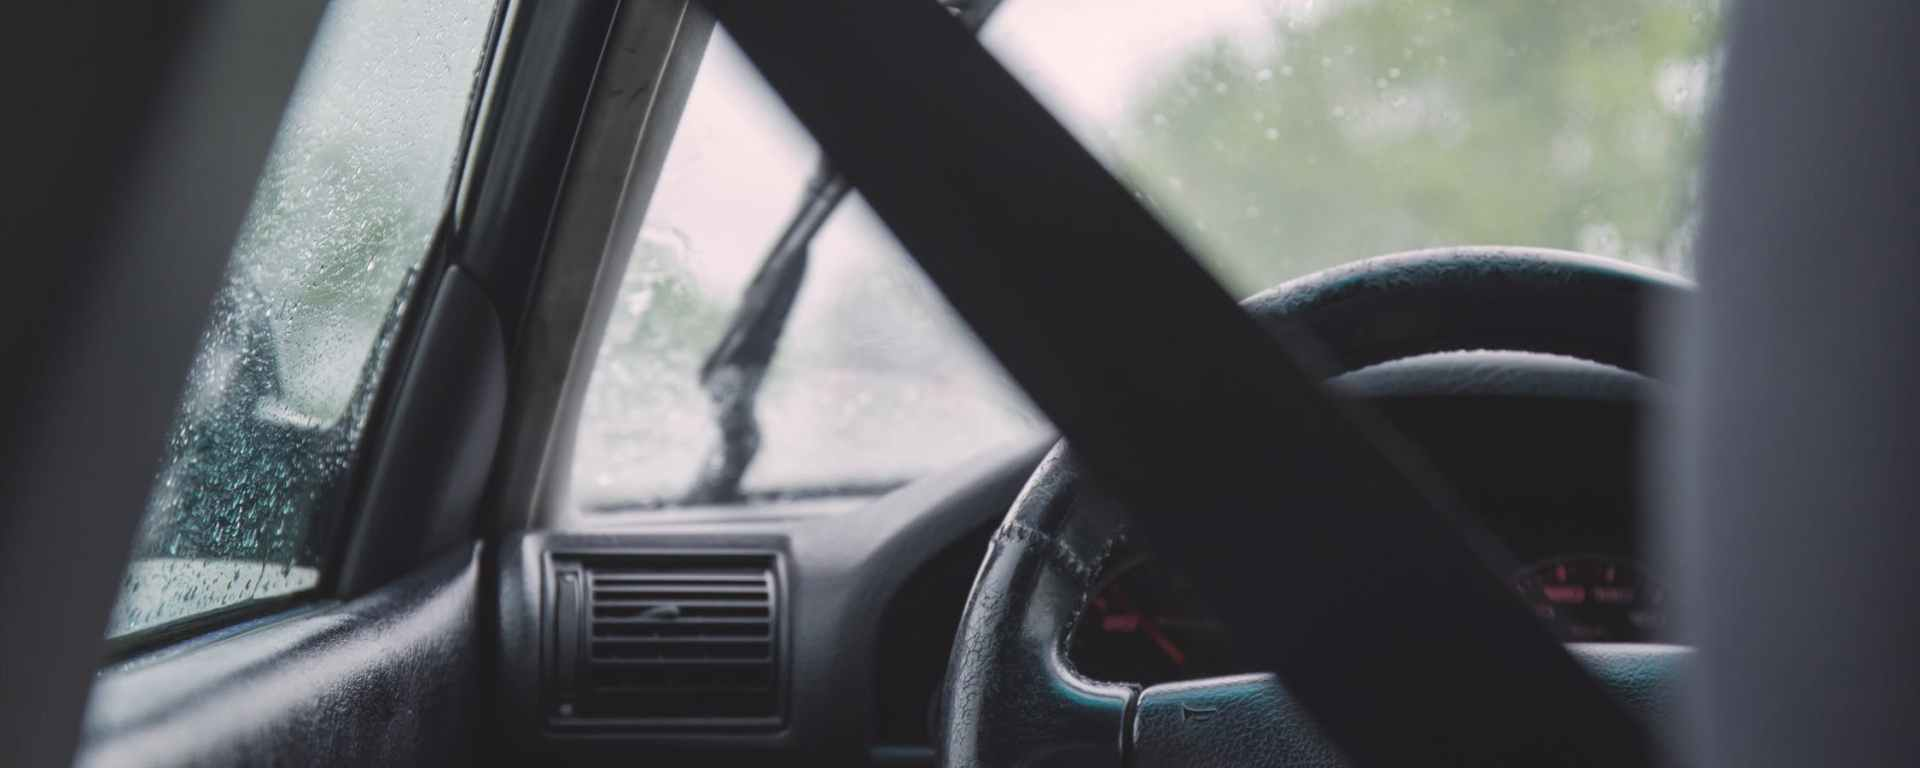 seatbelt on driver in car on rainy day